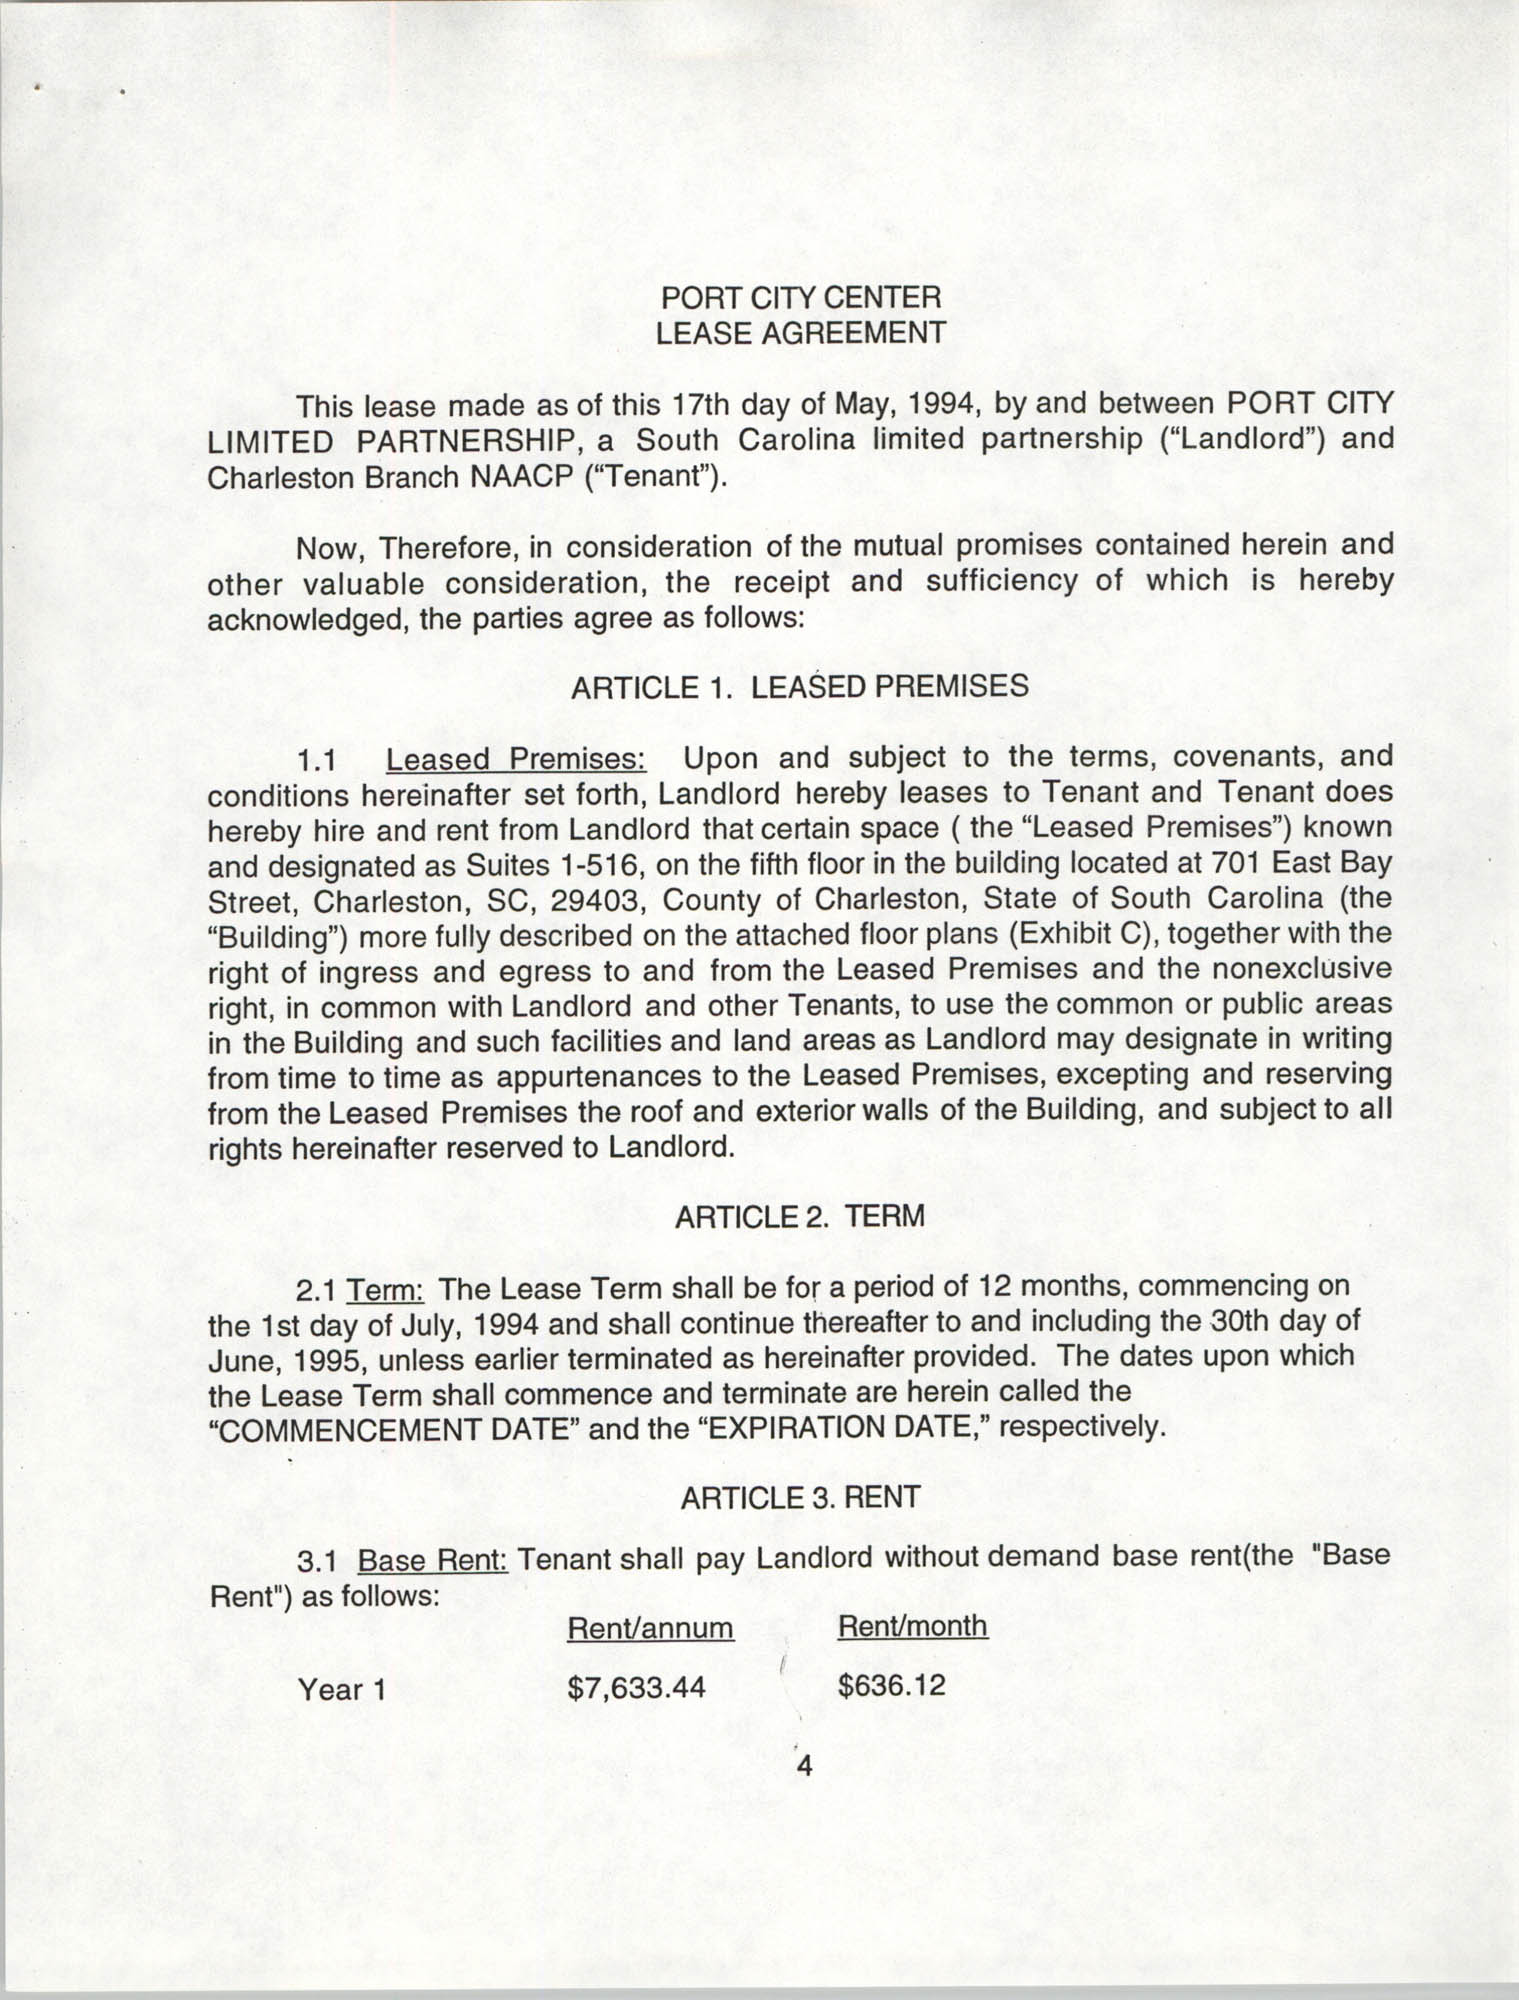 Charleston Branch of the NAACP Leasing Agreement, July 1994 to June 1995, Page 4